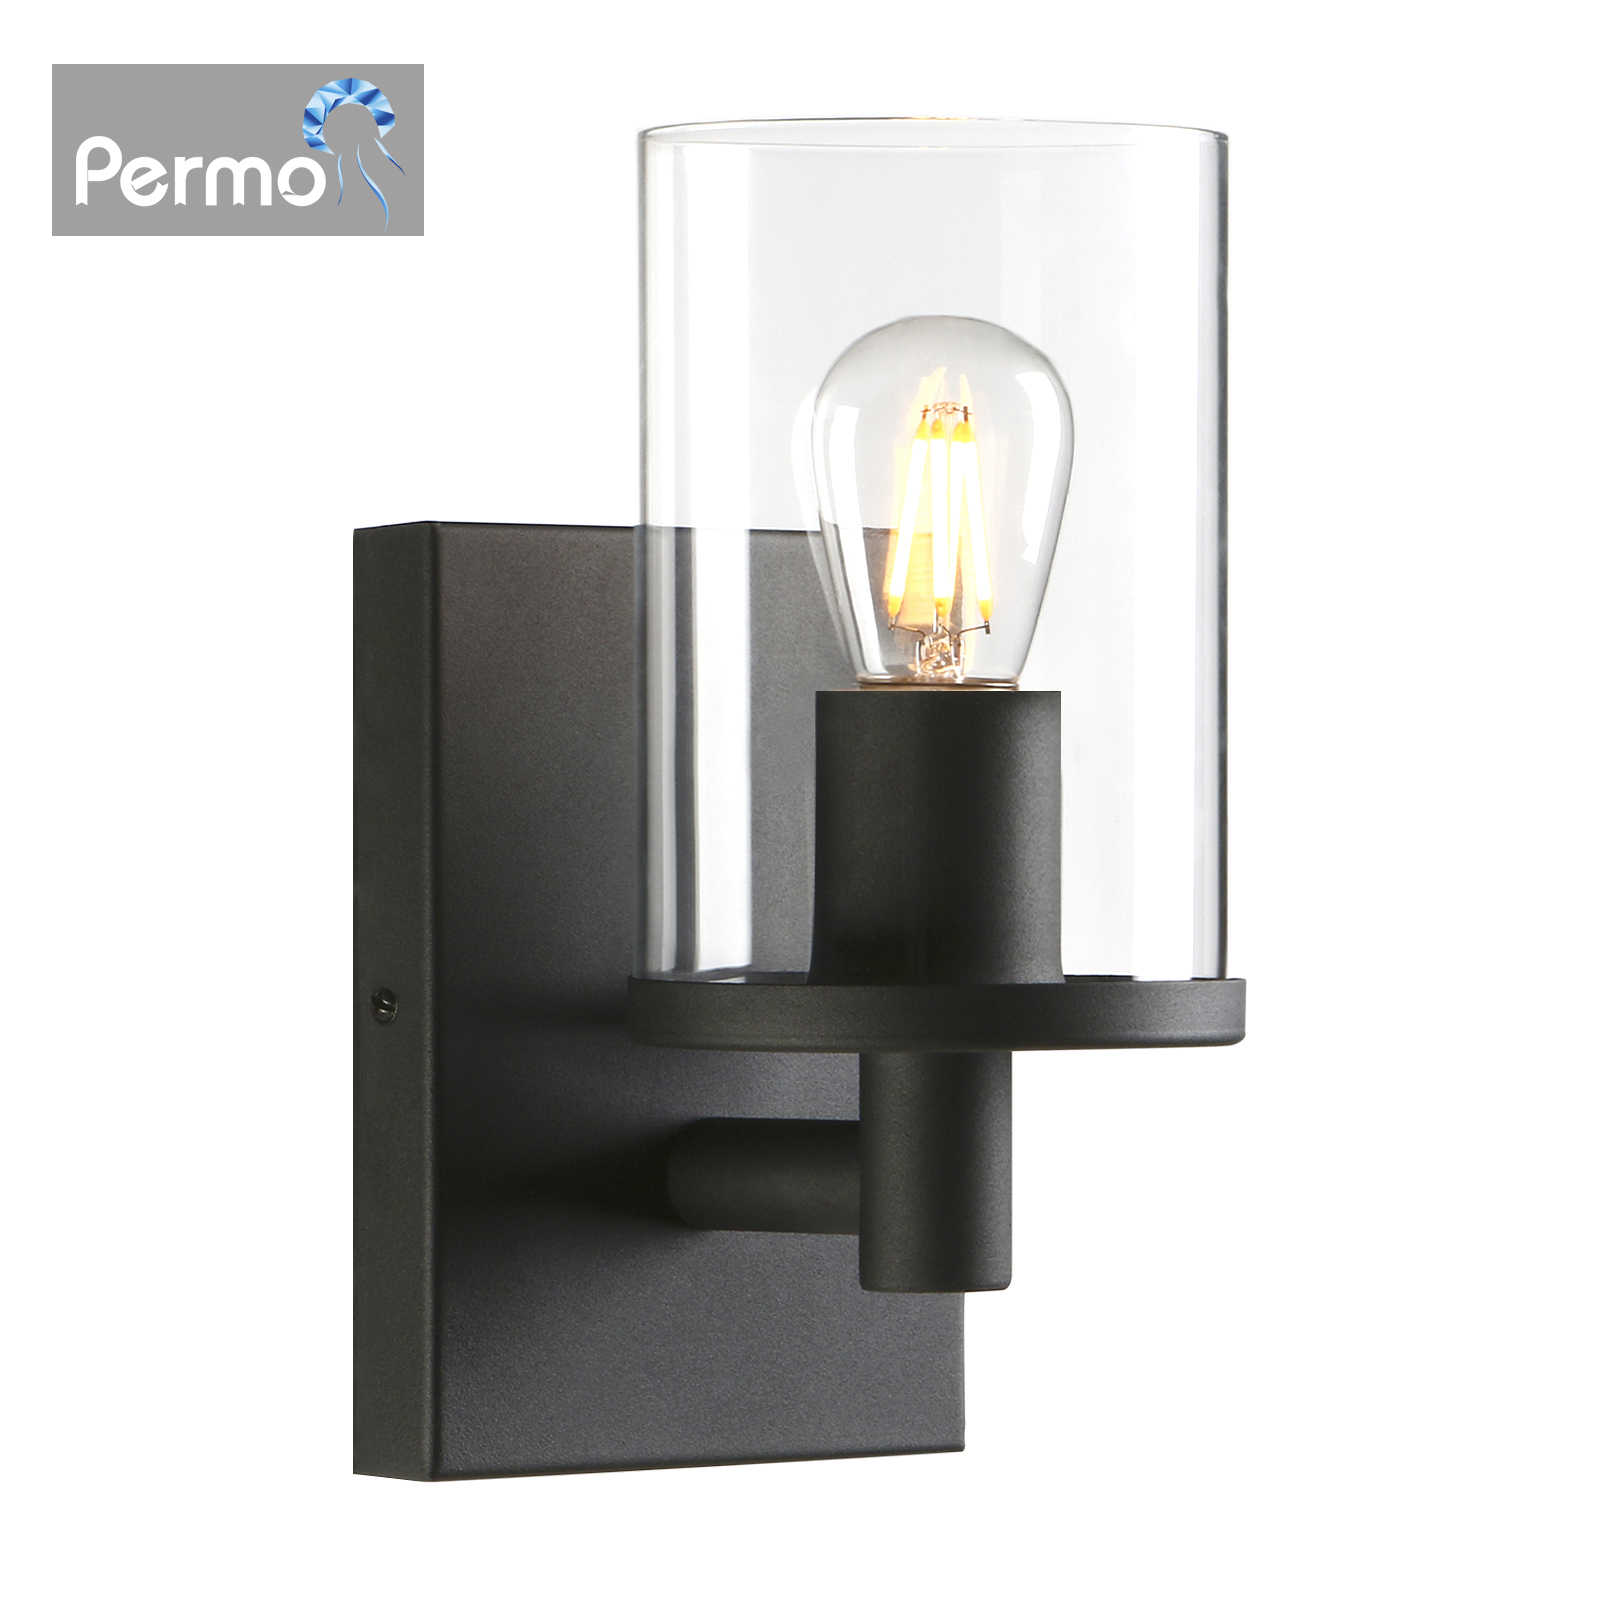 Permo Glass Wall Sconce Bathroom Vanity Light With 3 9 Inches Clear Glass Light Shade Wall Lamps Aliexpress